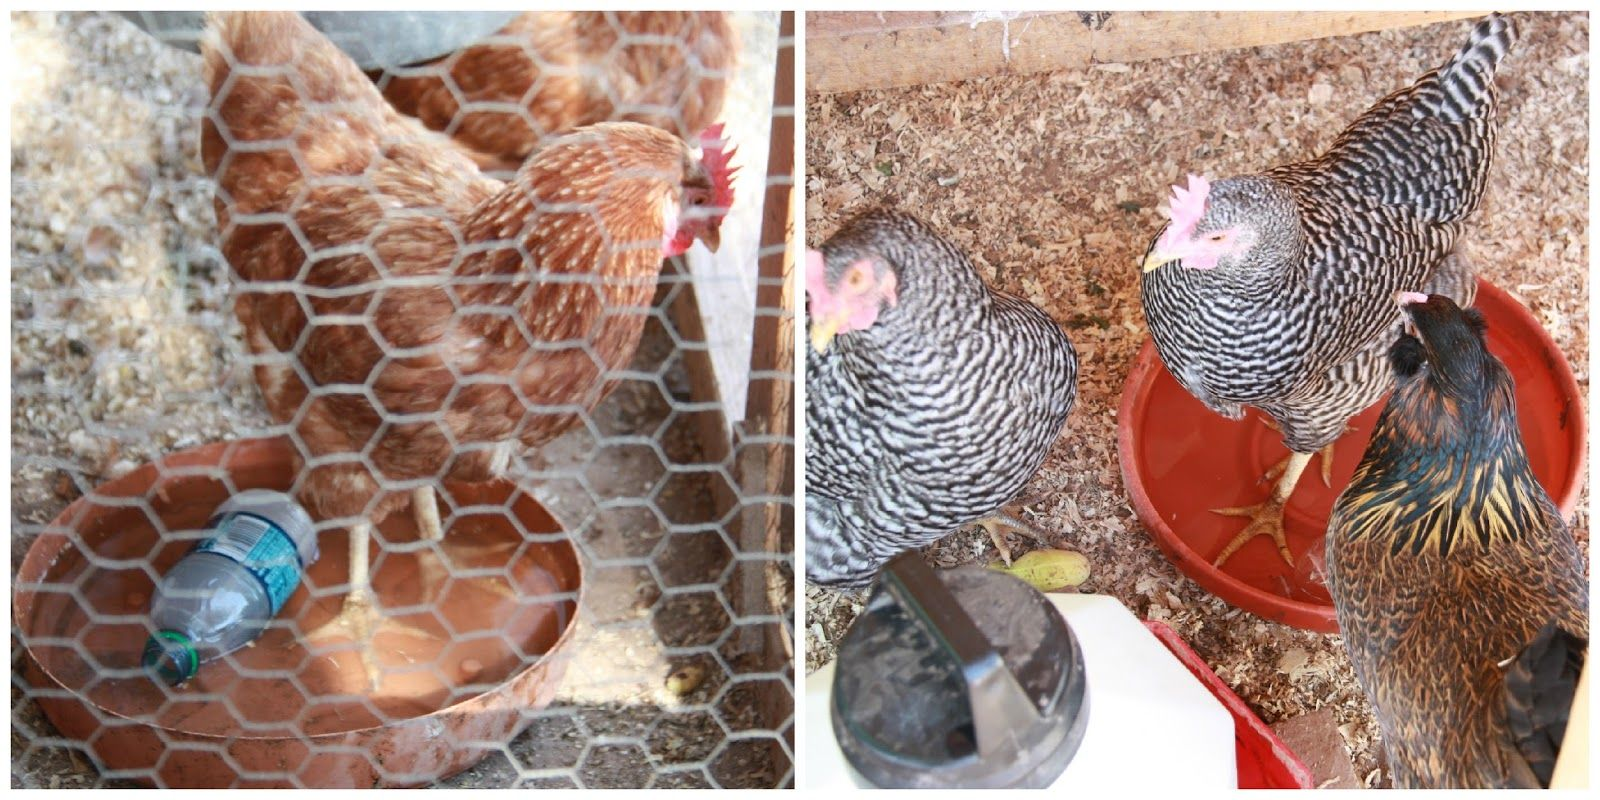 Caring for Your Chickens in the Heat | Pet chickens ...